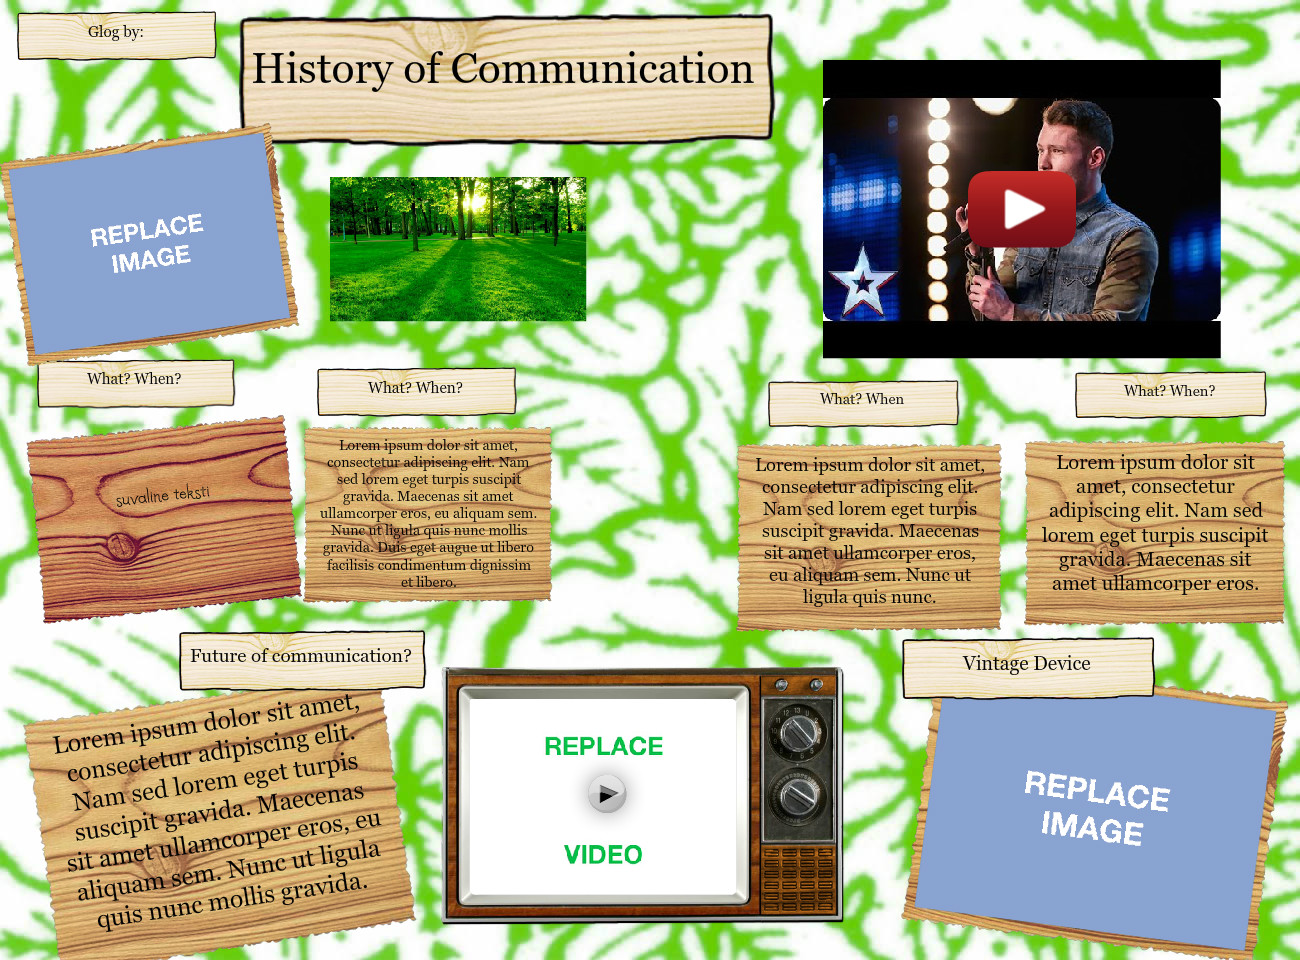 CommunicationHistory